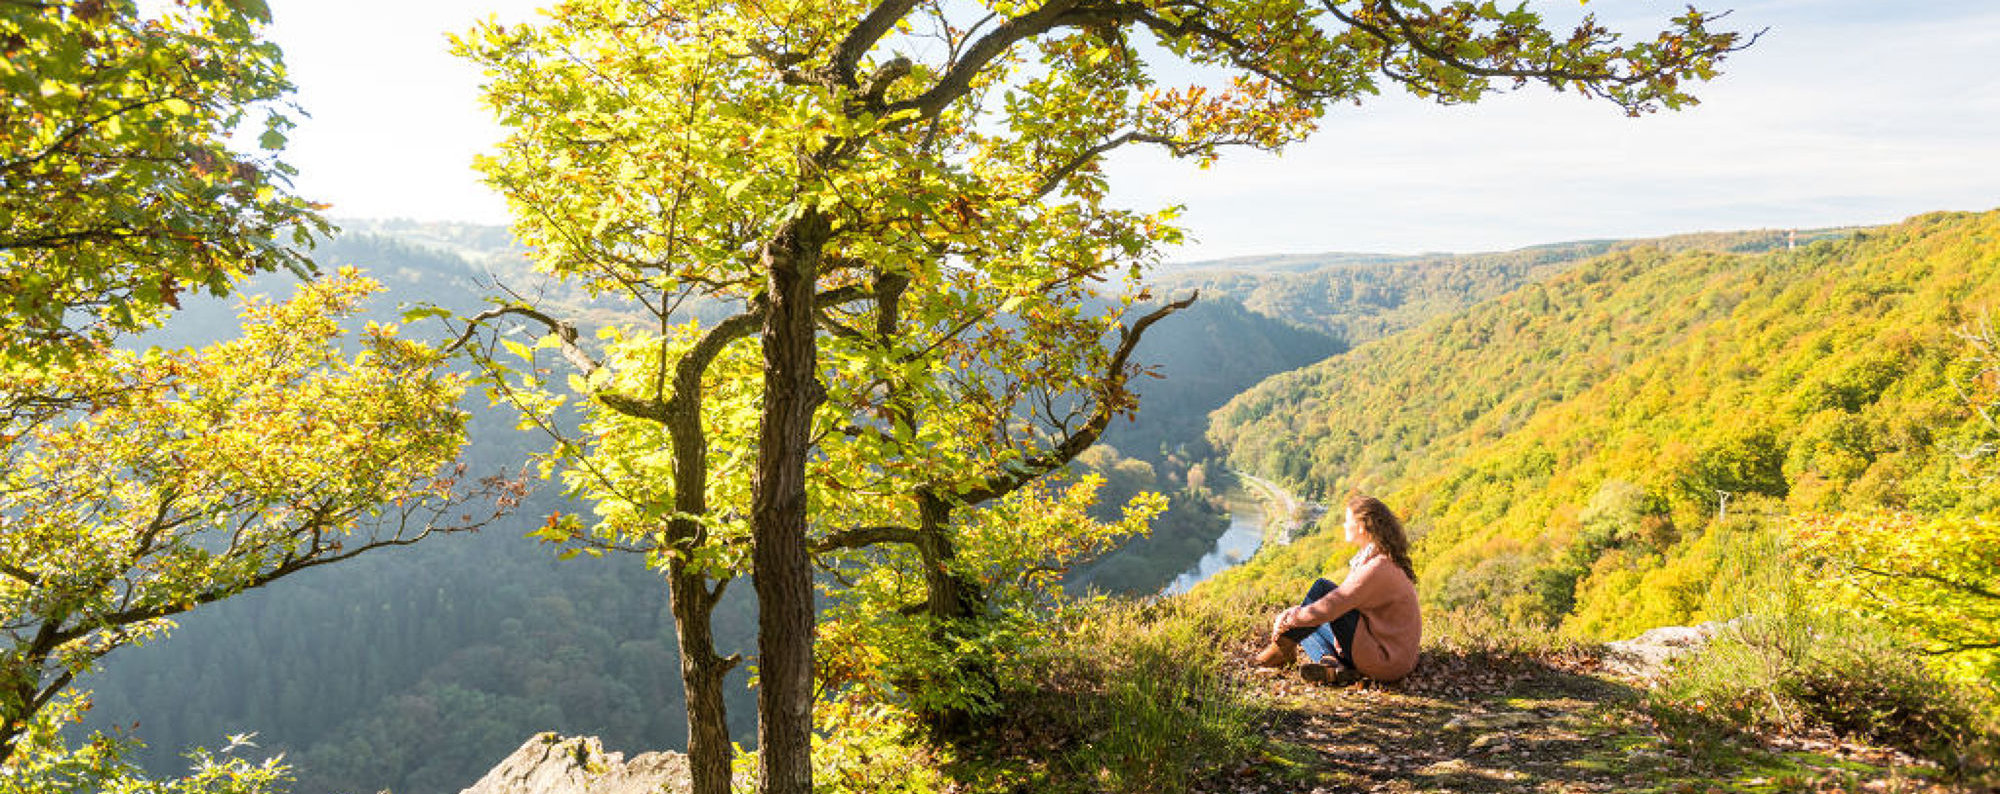 Relaxation at the Wolfsley viewpoint with excellent views of the Lahn valley, Lahn valley